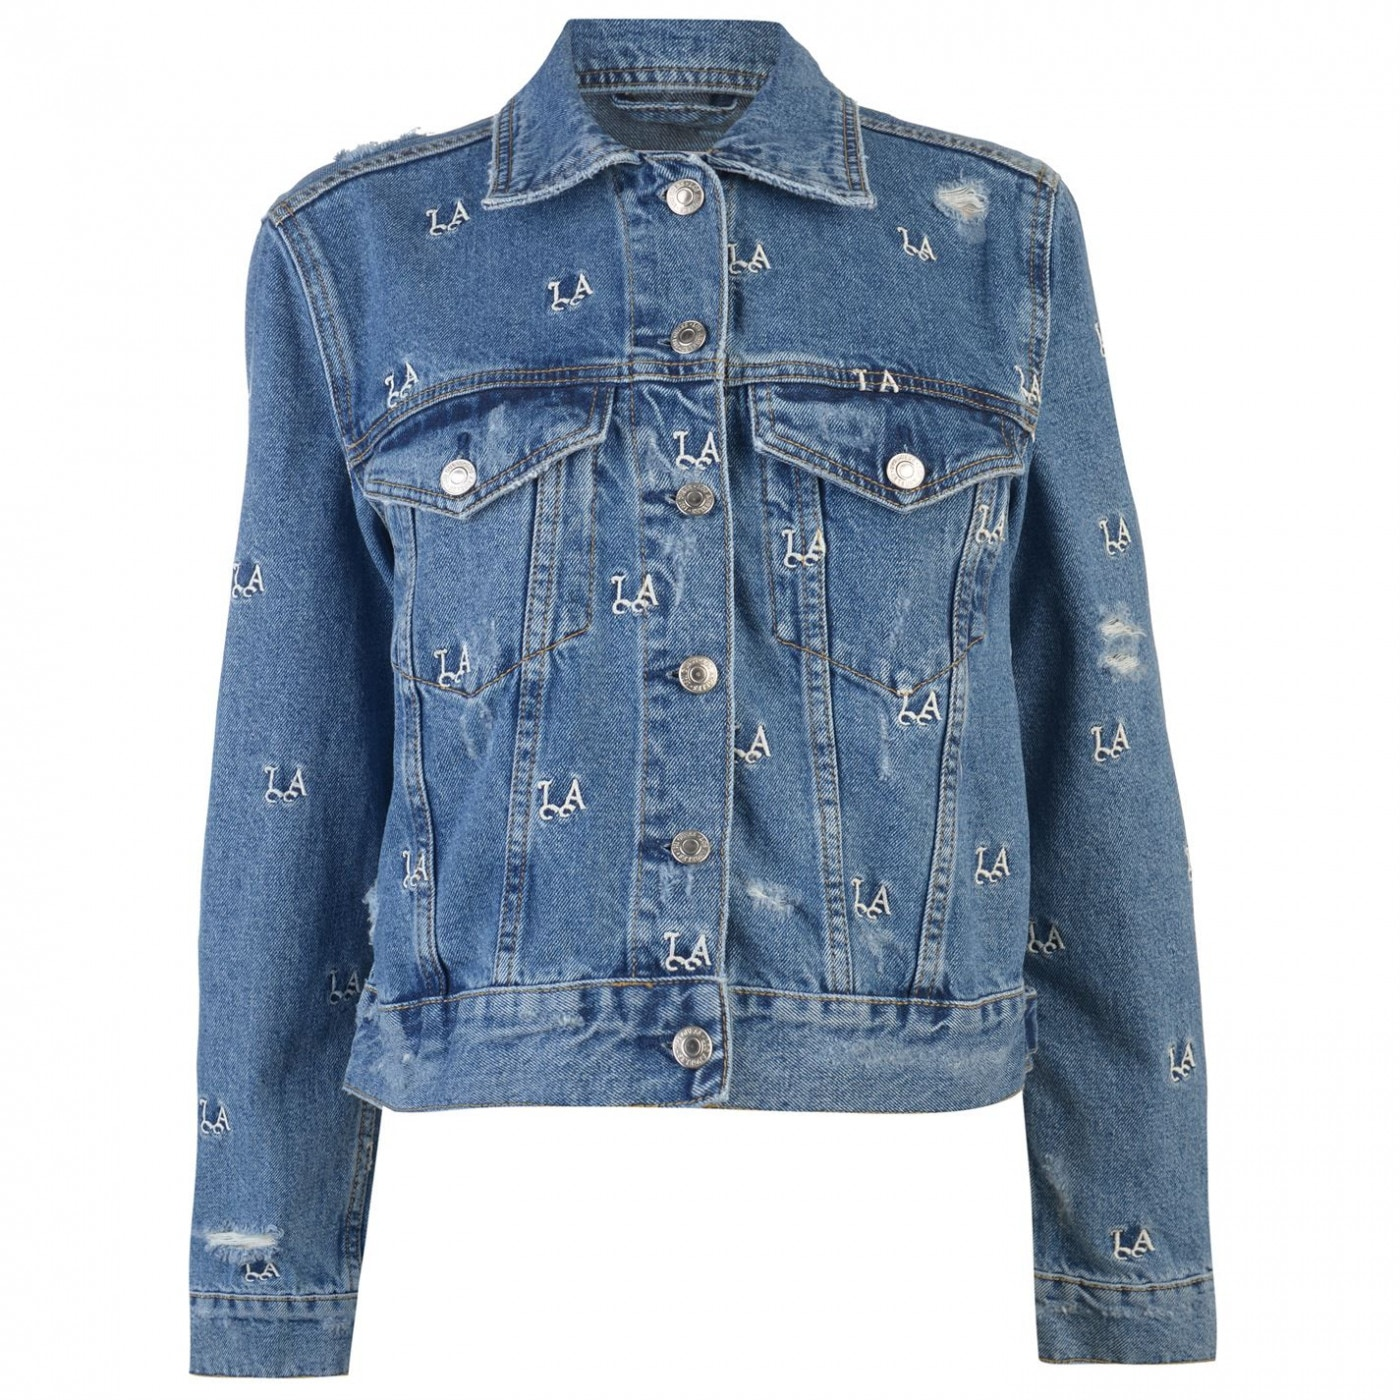 Guess Monogram Embroidered Trucker Jacket